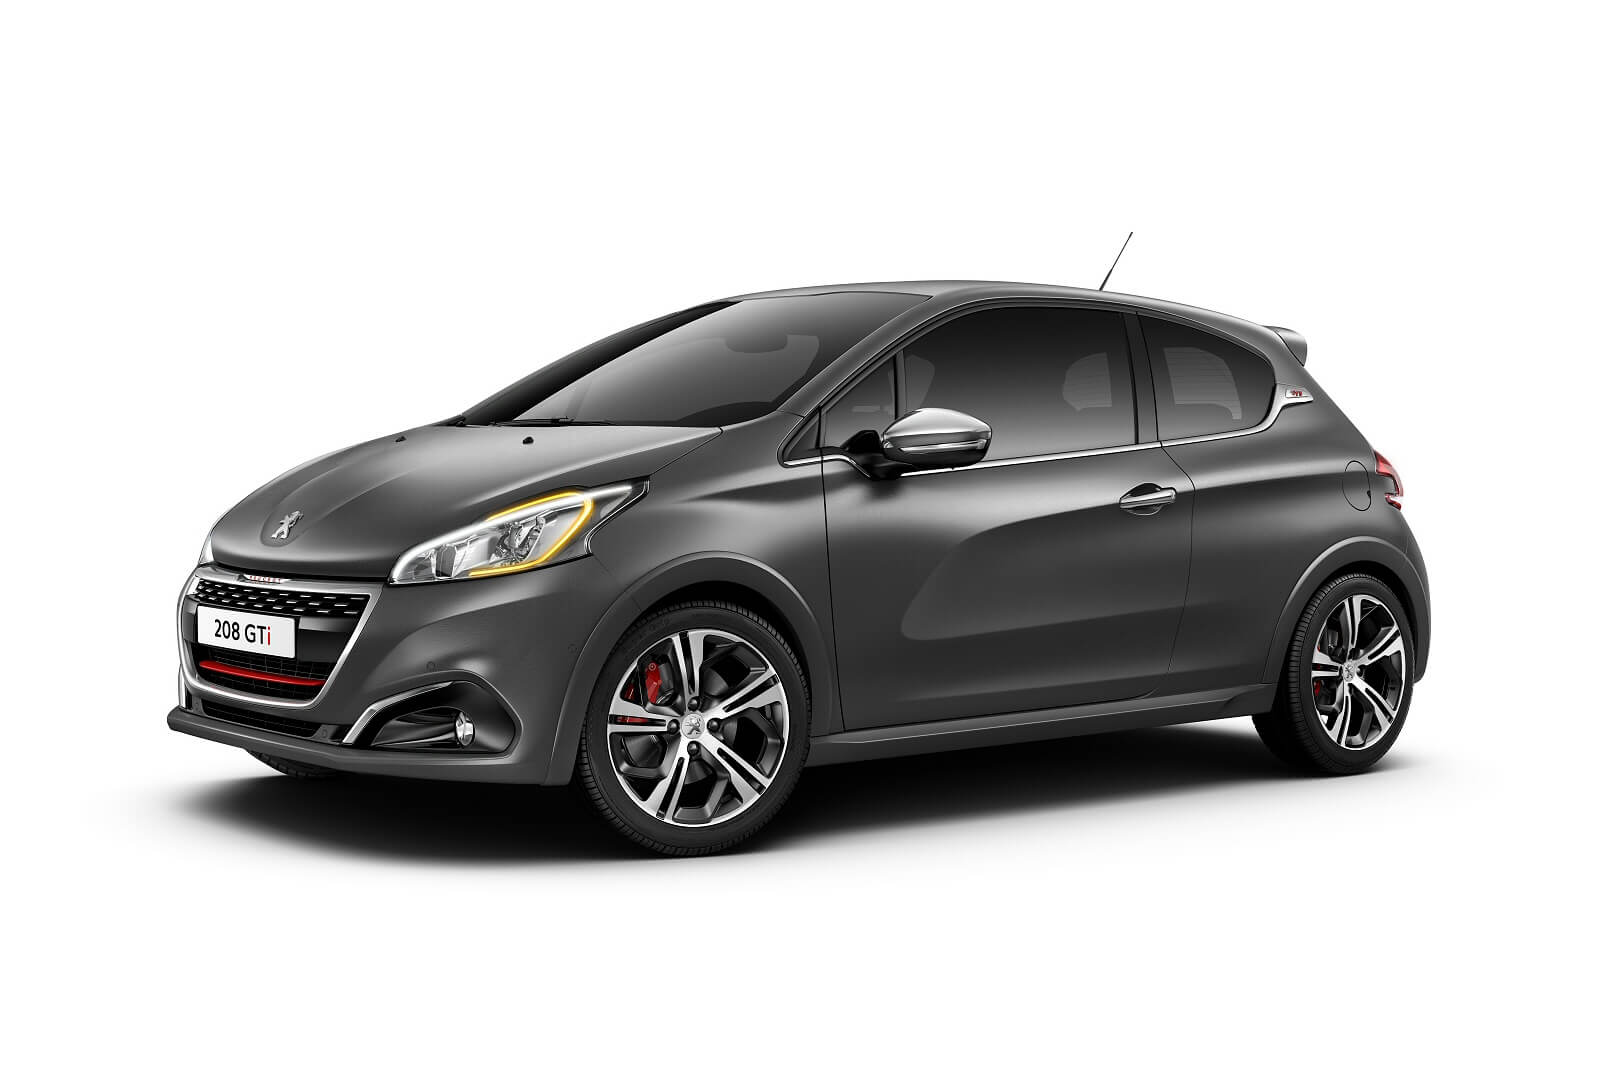 Le Meilleur Peugeot 208 Robins And Day Ce Mois Ci